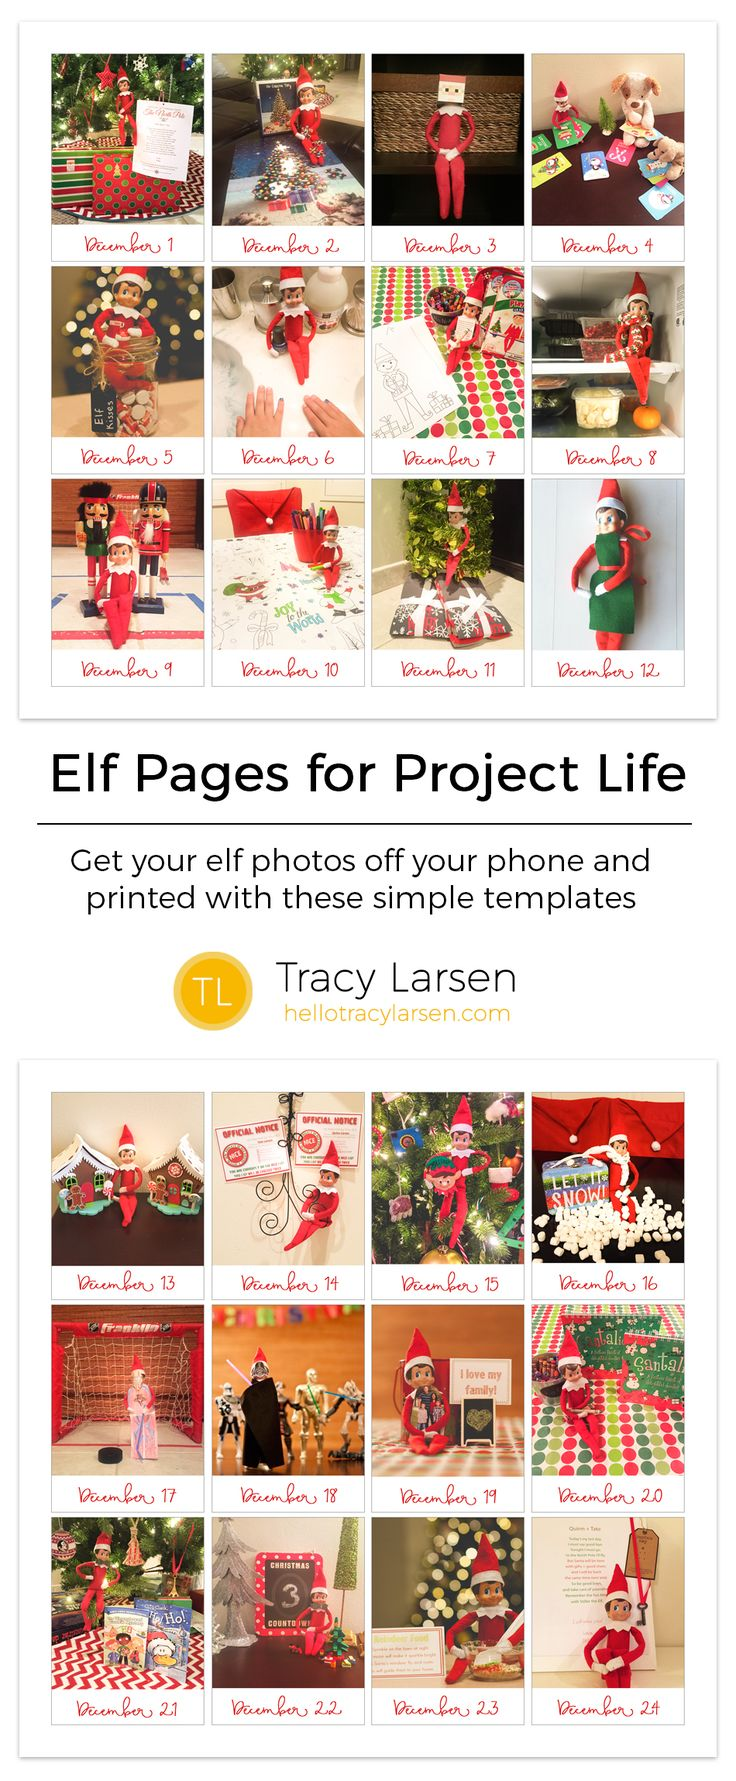 How to scrapbook with project life - Elf Magic Elf On The Shelf Ideas How To Document Your Elf With Project Life